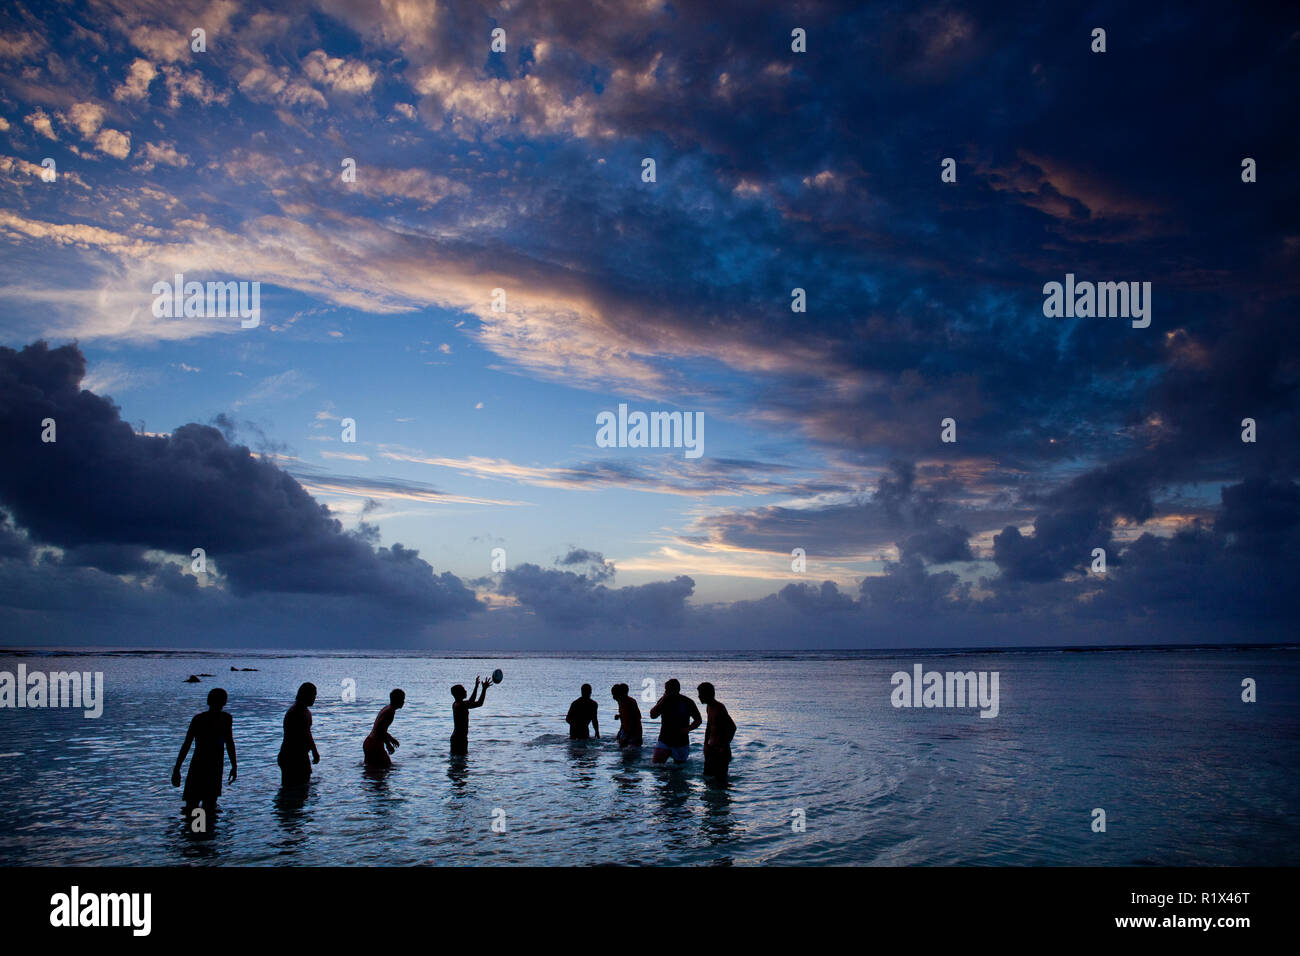 Locals cooling off with some lagoon rugby, Rarotonga, Cook Islands. - Stock Image